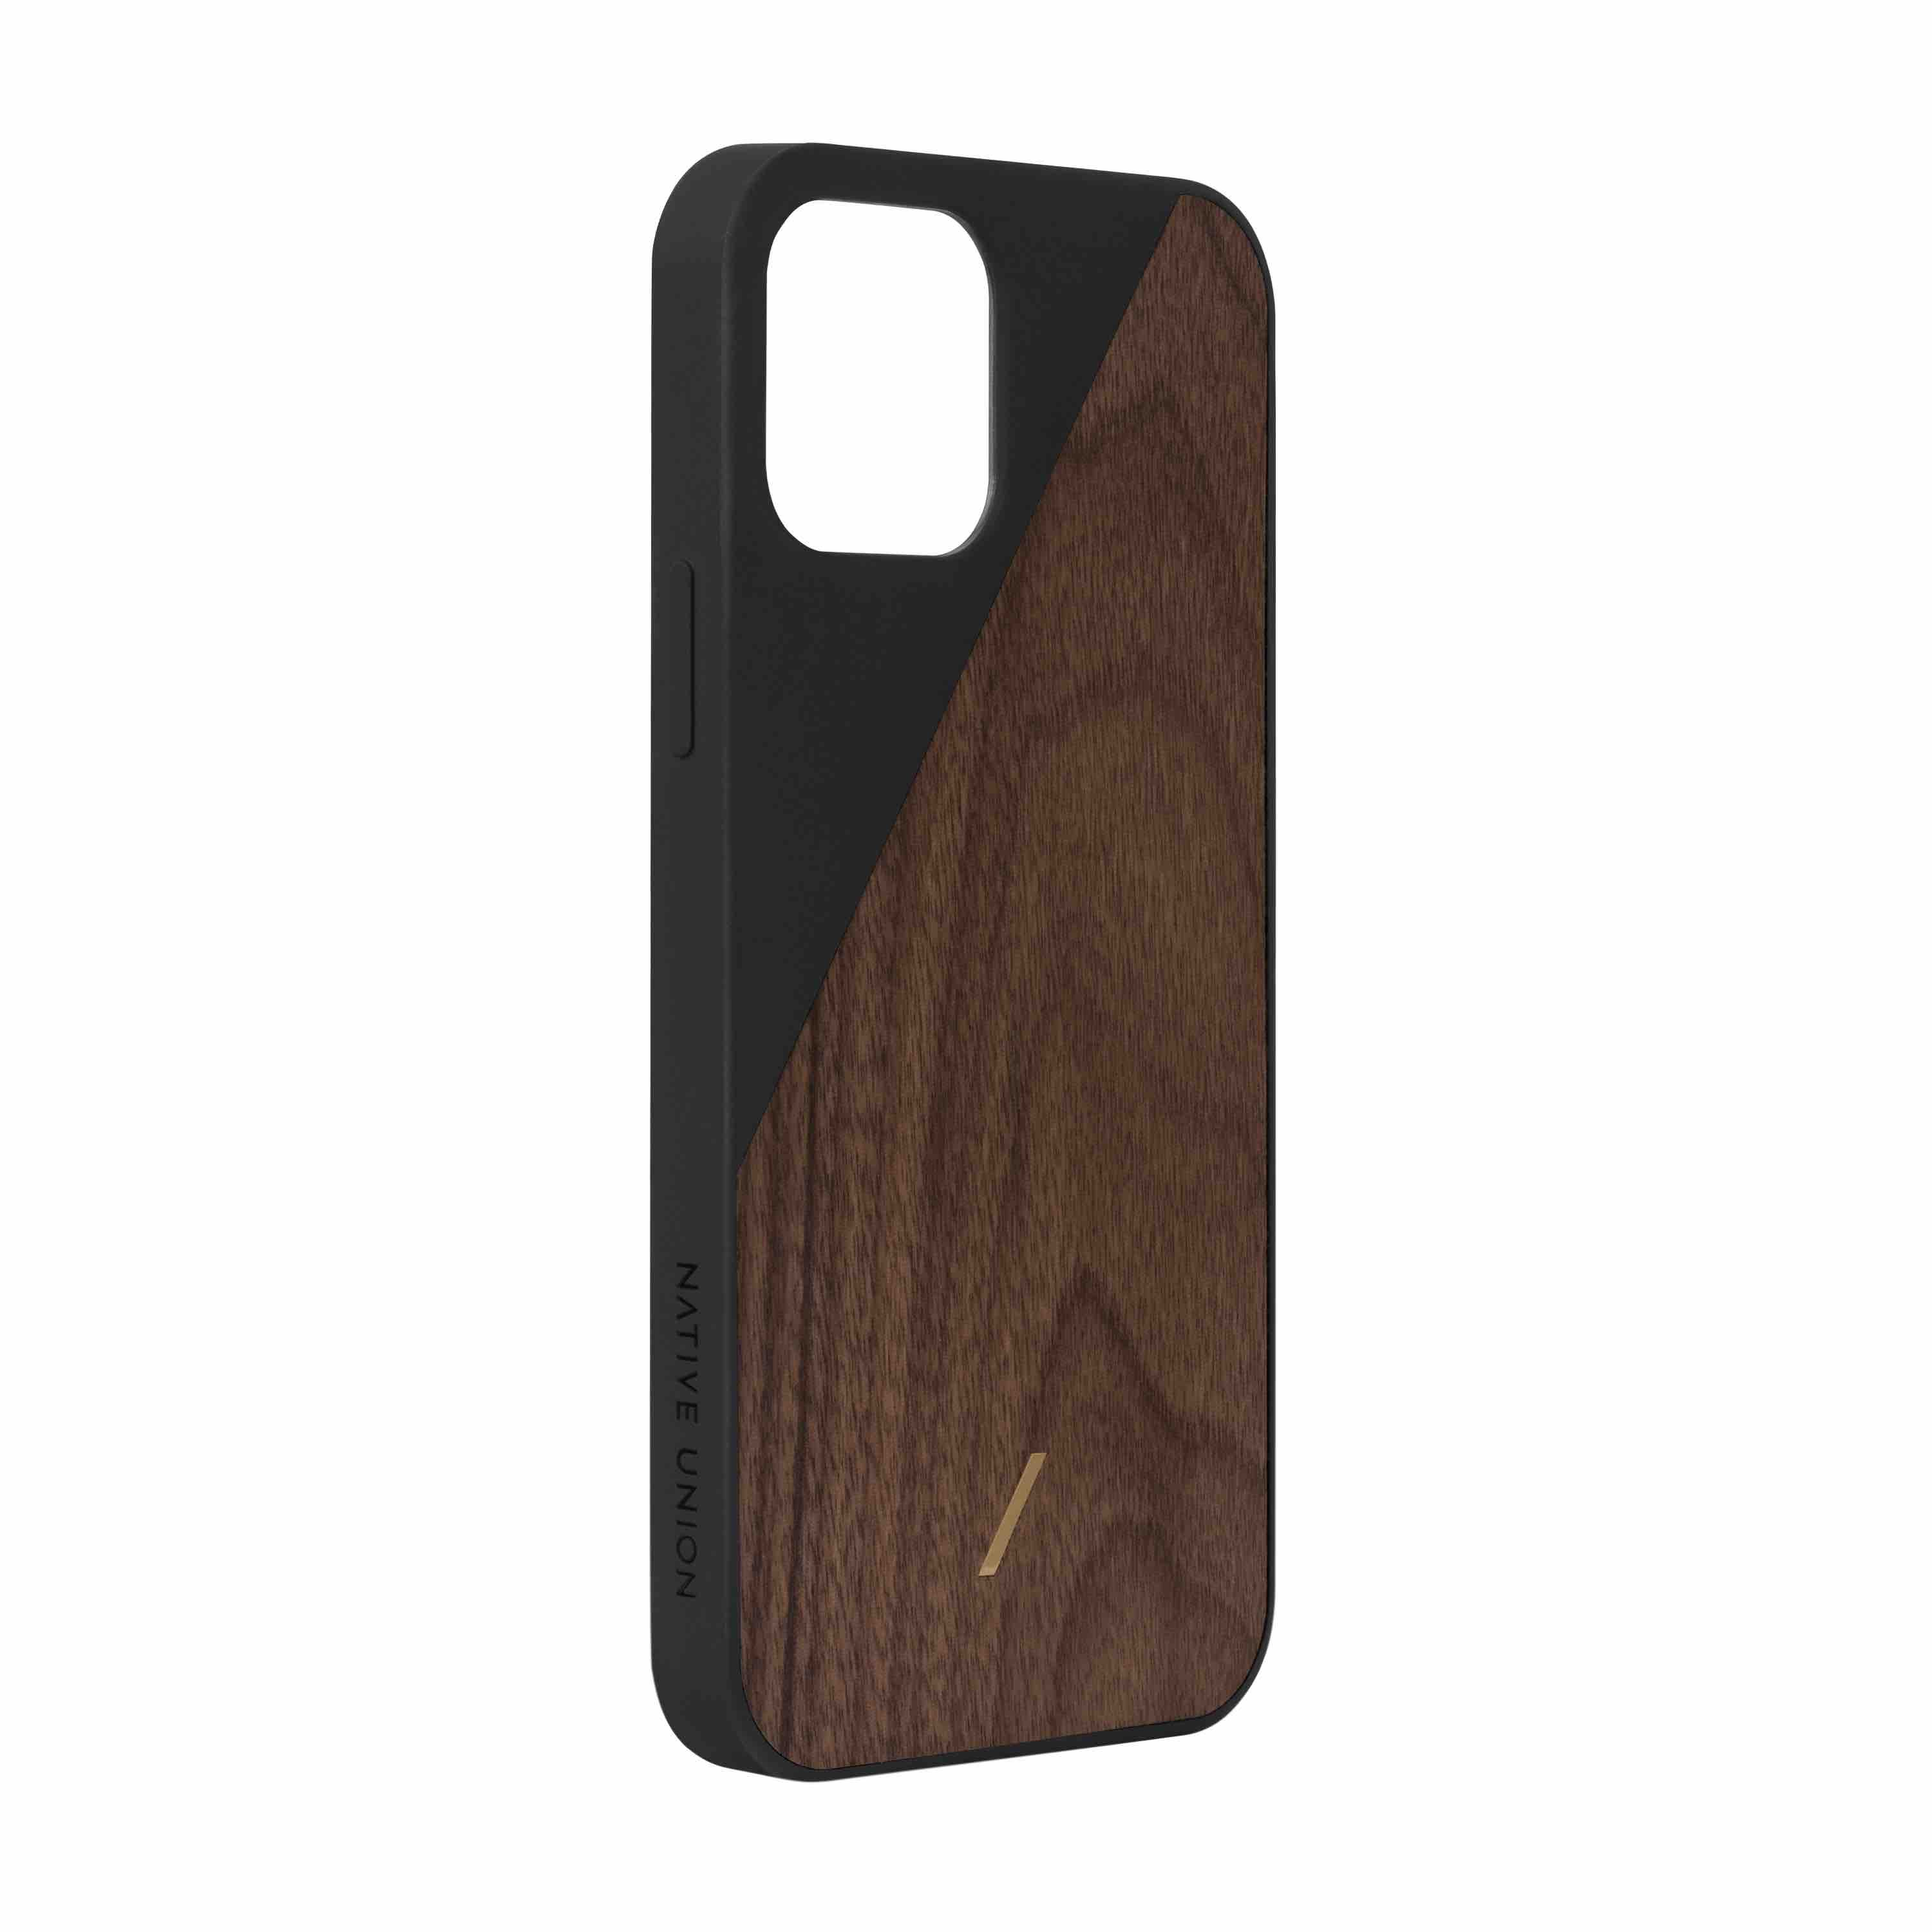 Native Union iPhone 12 / iPhone 12 Pro Clic Wooden Case